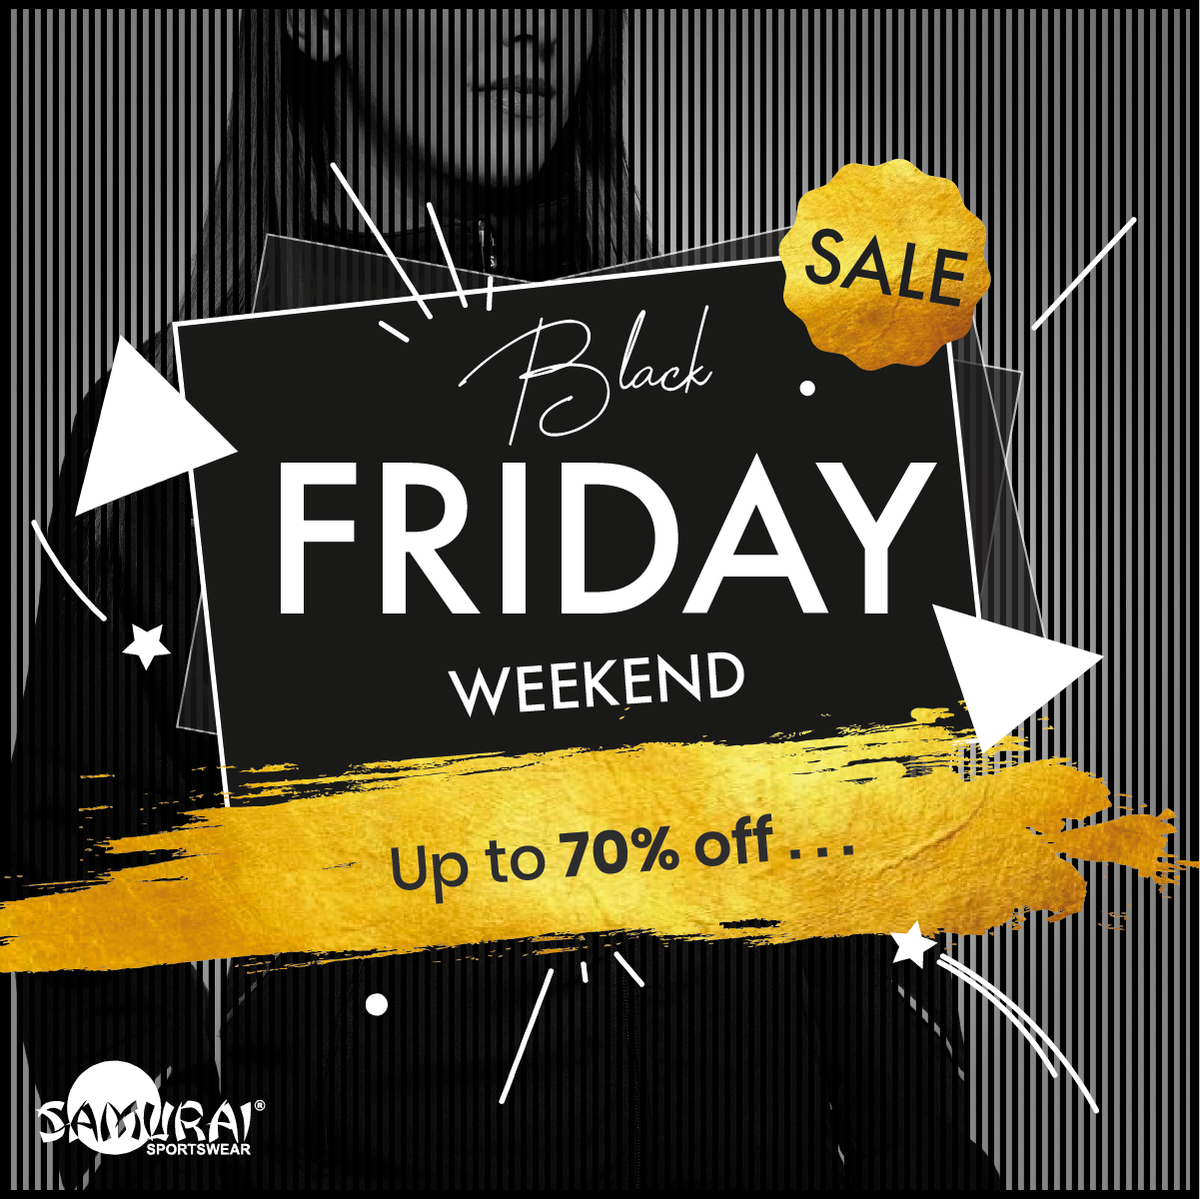 test Twitter Media - Jackets, T-shirts, balls, hoodies, trackpants, protective equipment - all in our Black Friday Weekender. Up to 70% off! https://t.co/BaVML2FlIW